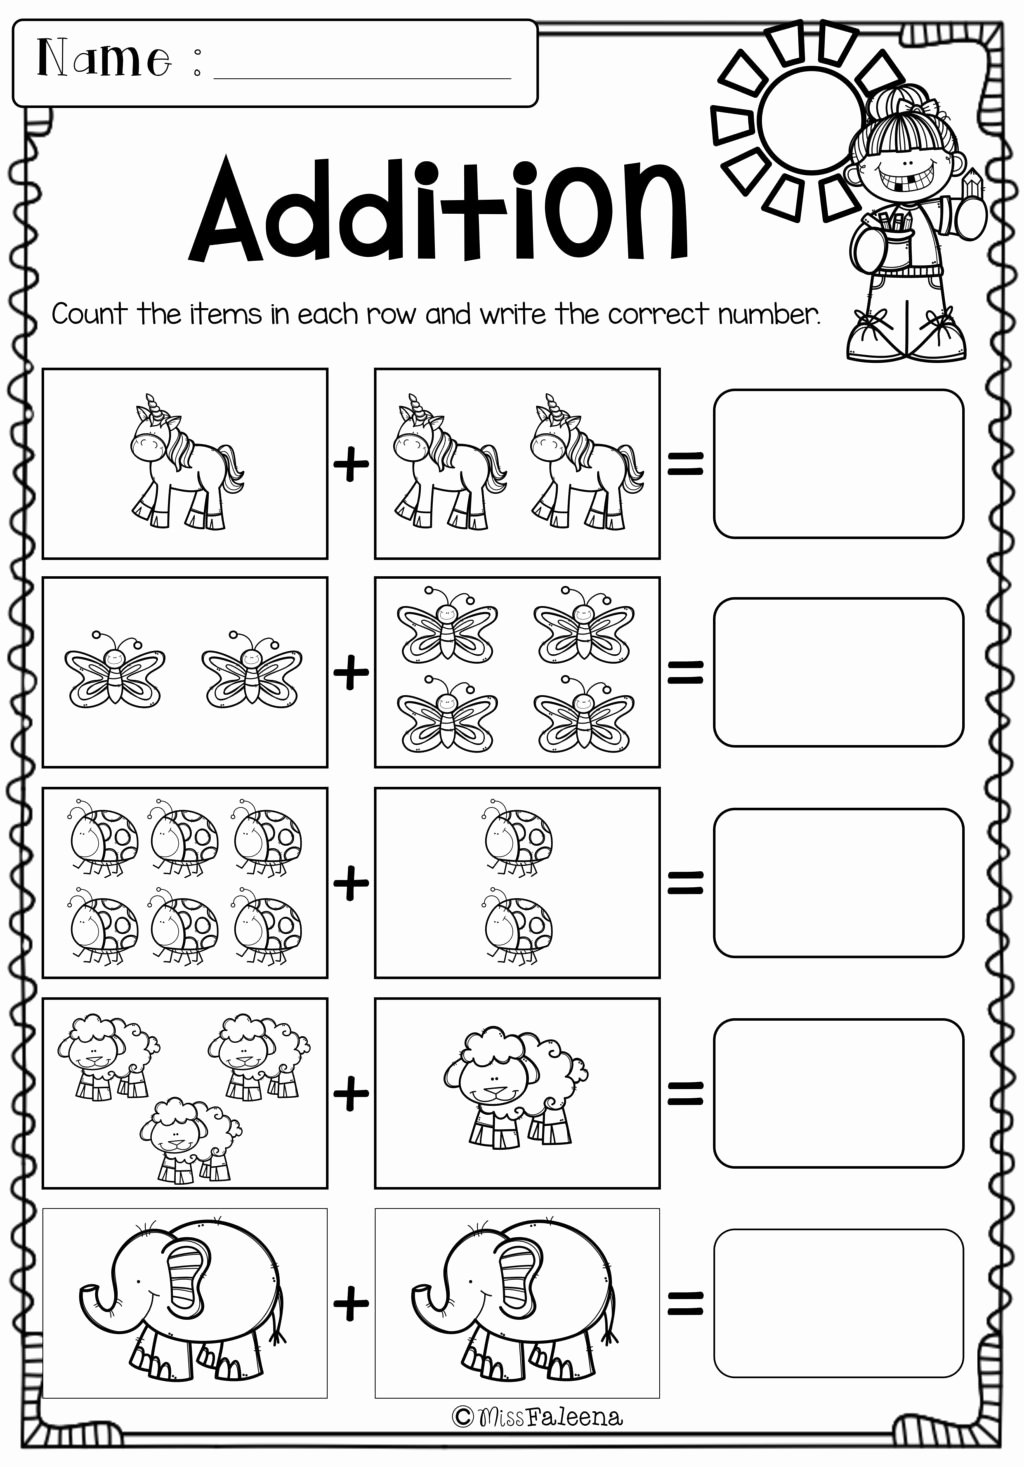 January Worksheets for Preschoolers top Worksheet Worksheet Printableork for Kindergarten January